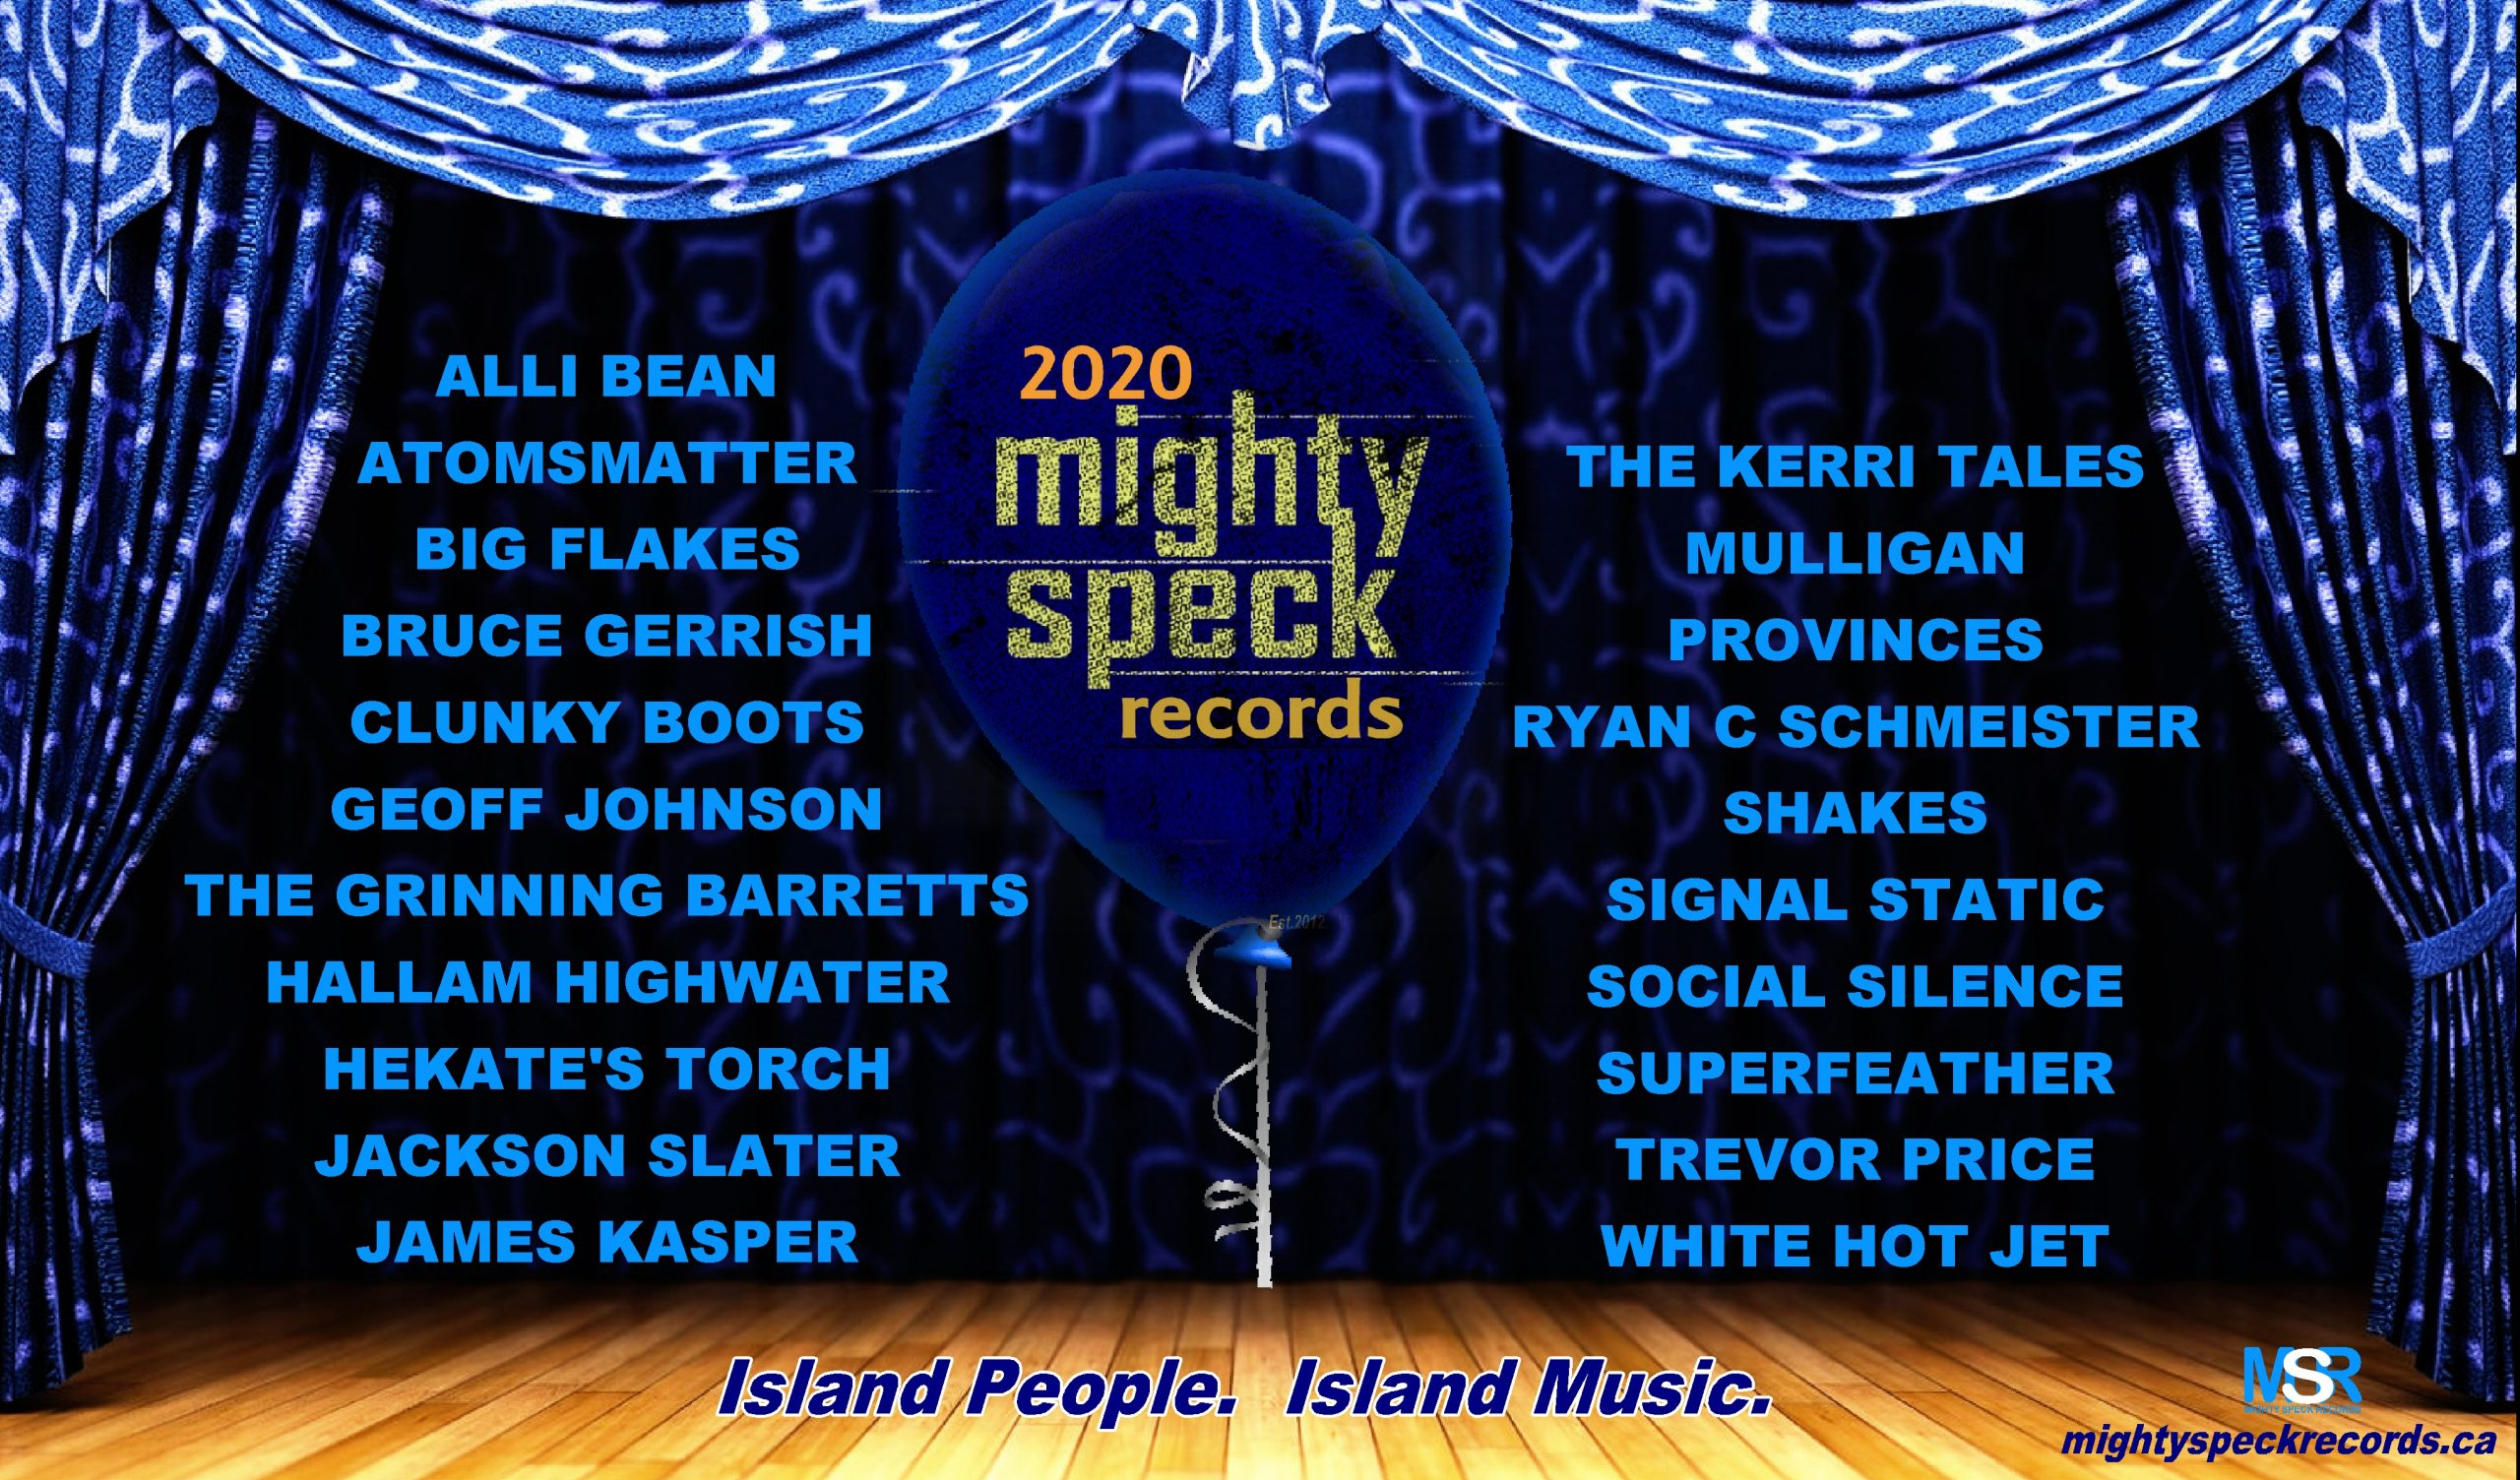 Might Speck Records 2020 roster